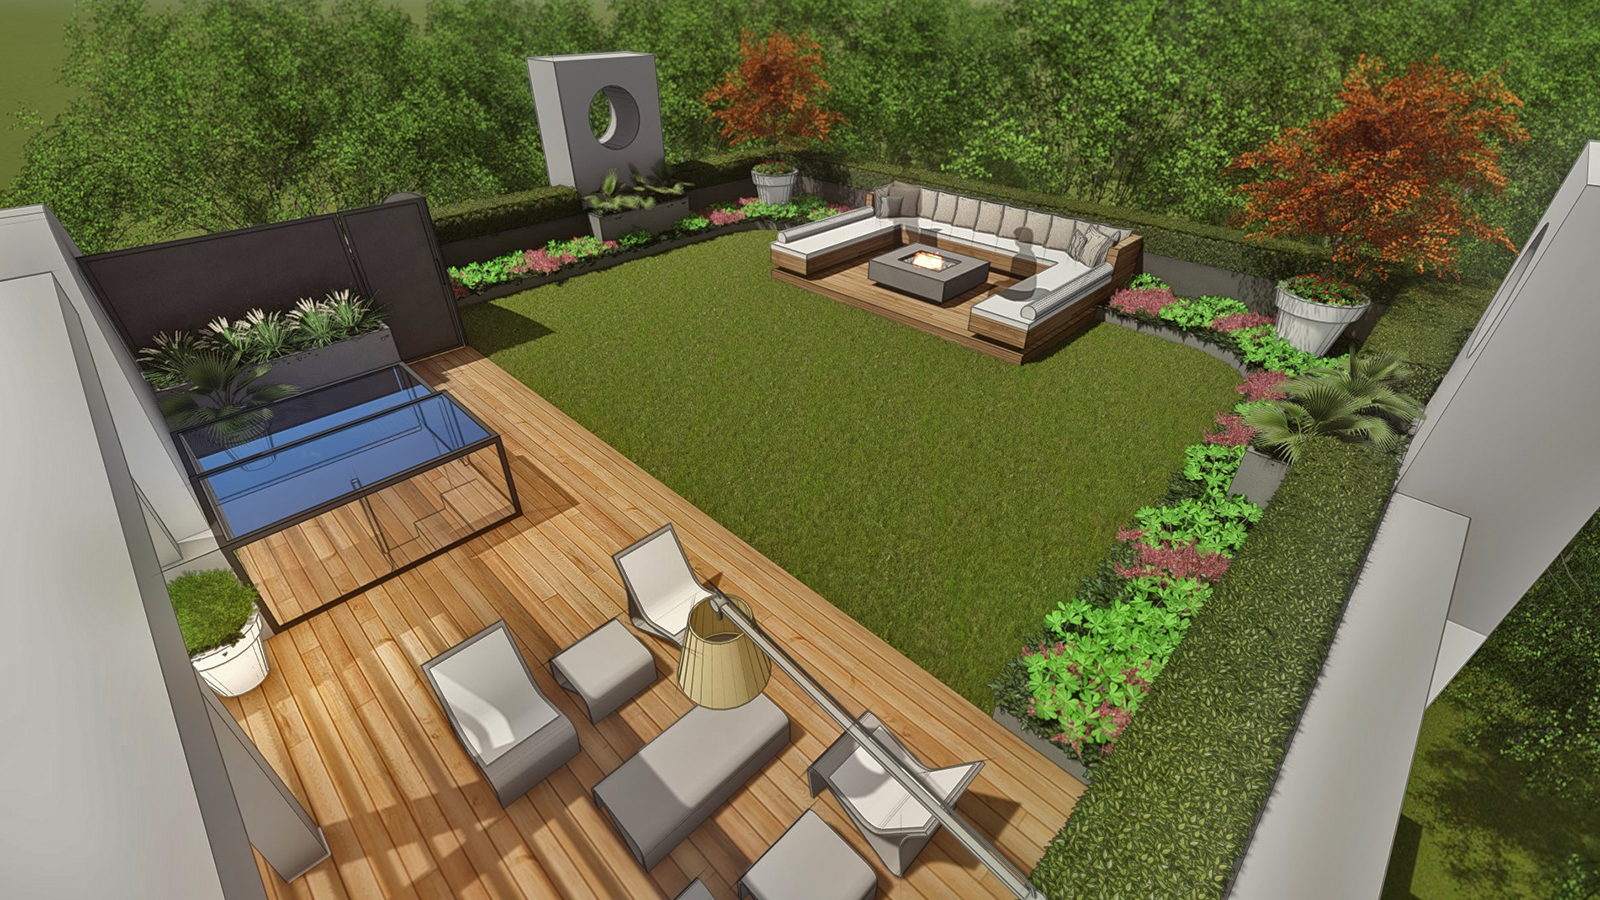 ROOFTOP LAWN AREA